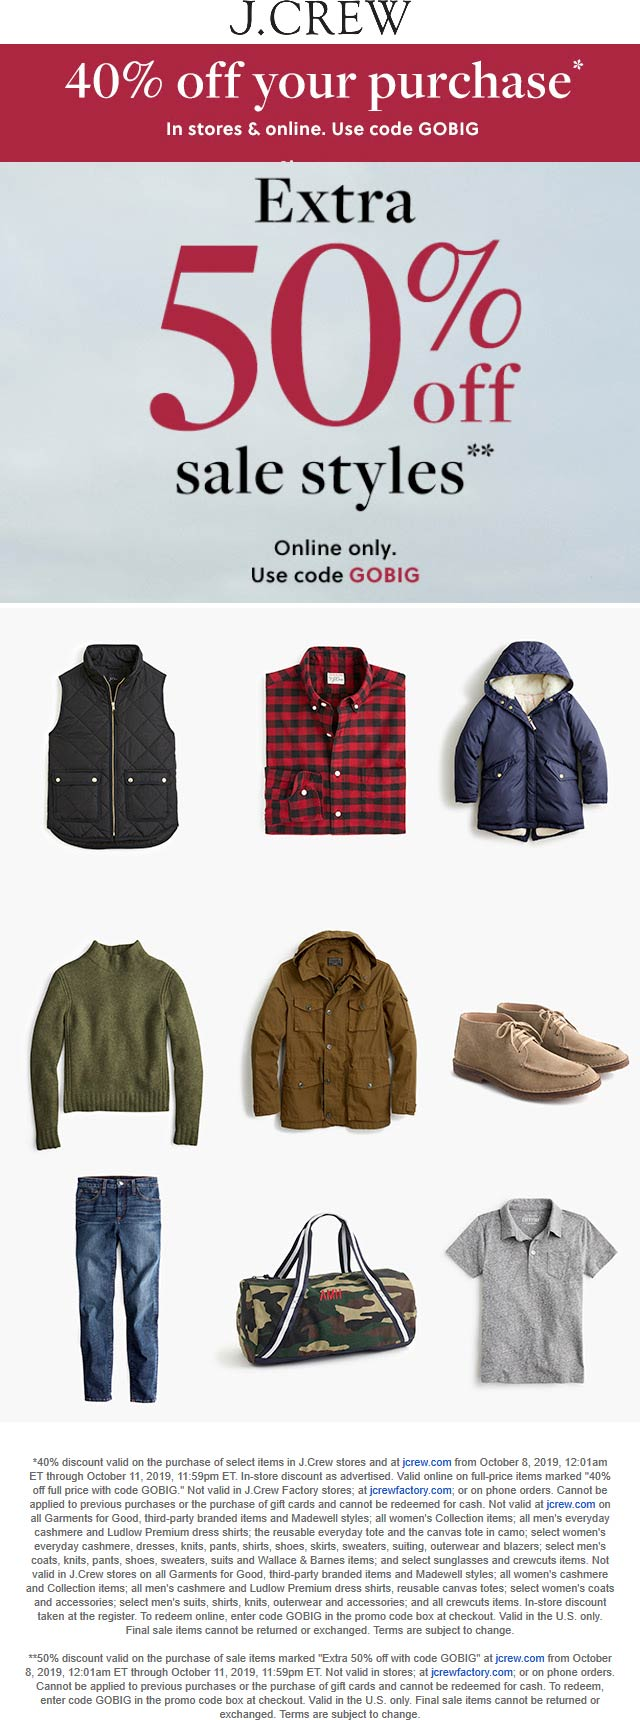 J.Crew Coupon January 2020 40% off at J.Crew, or online via promo code GOBIG